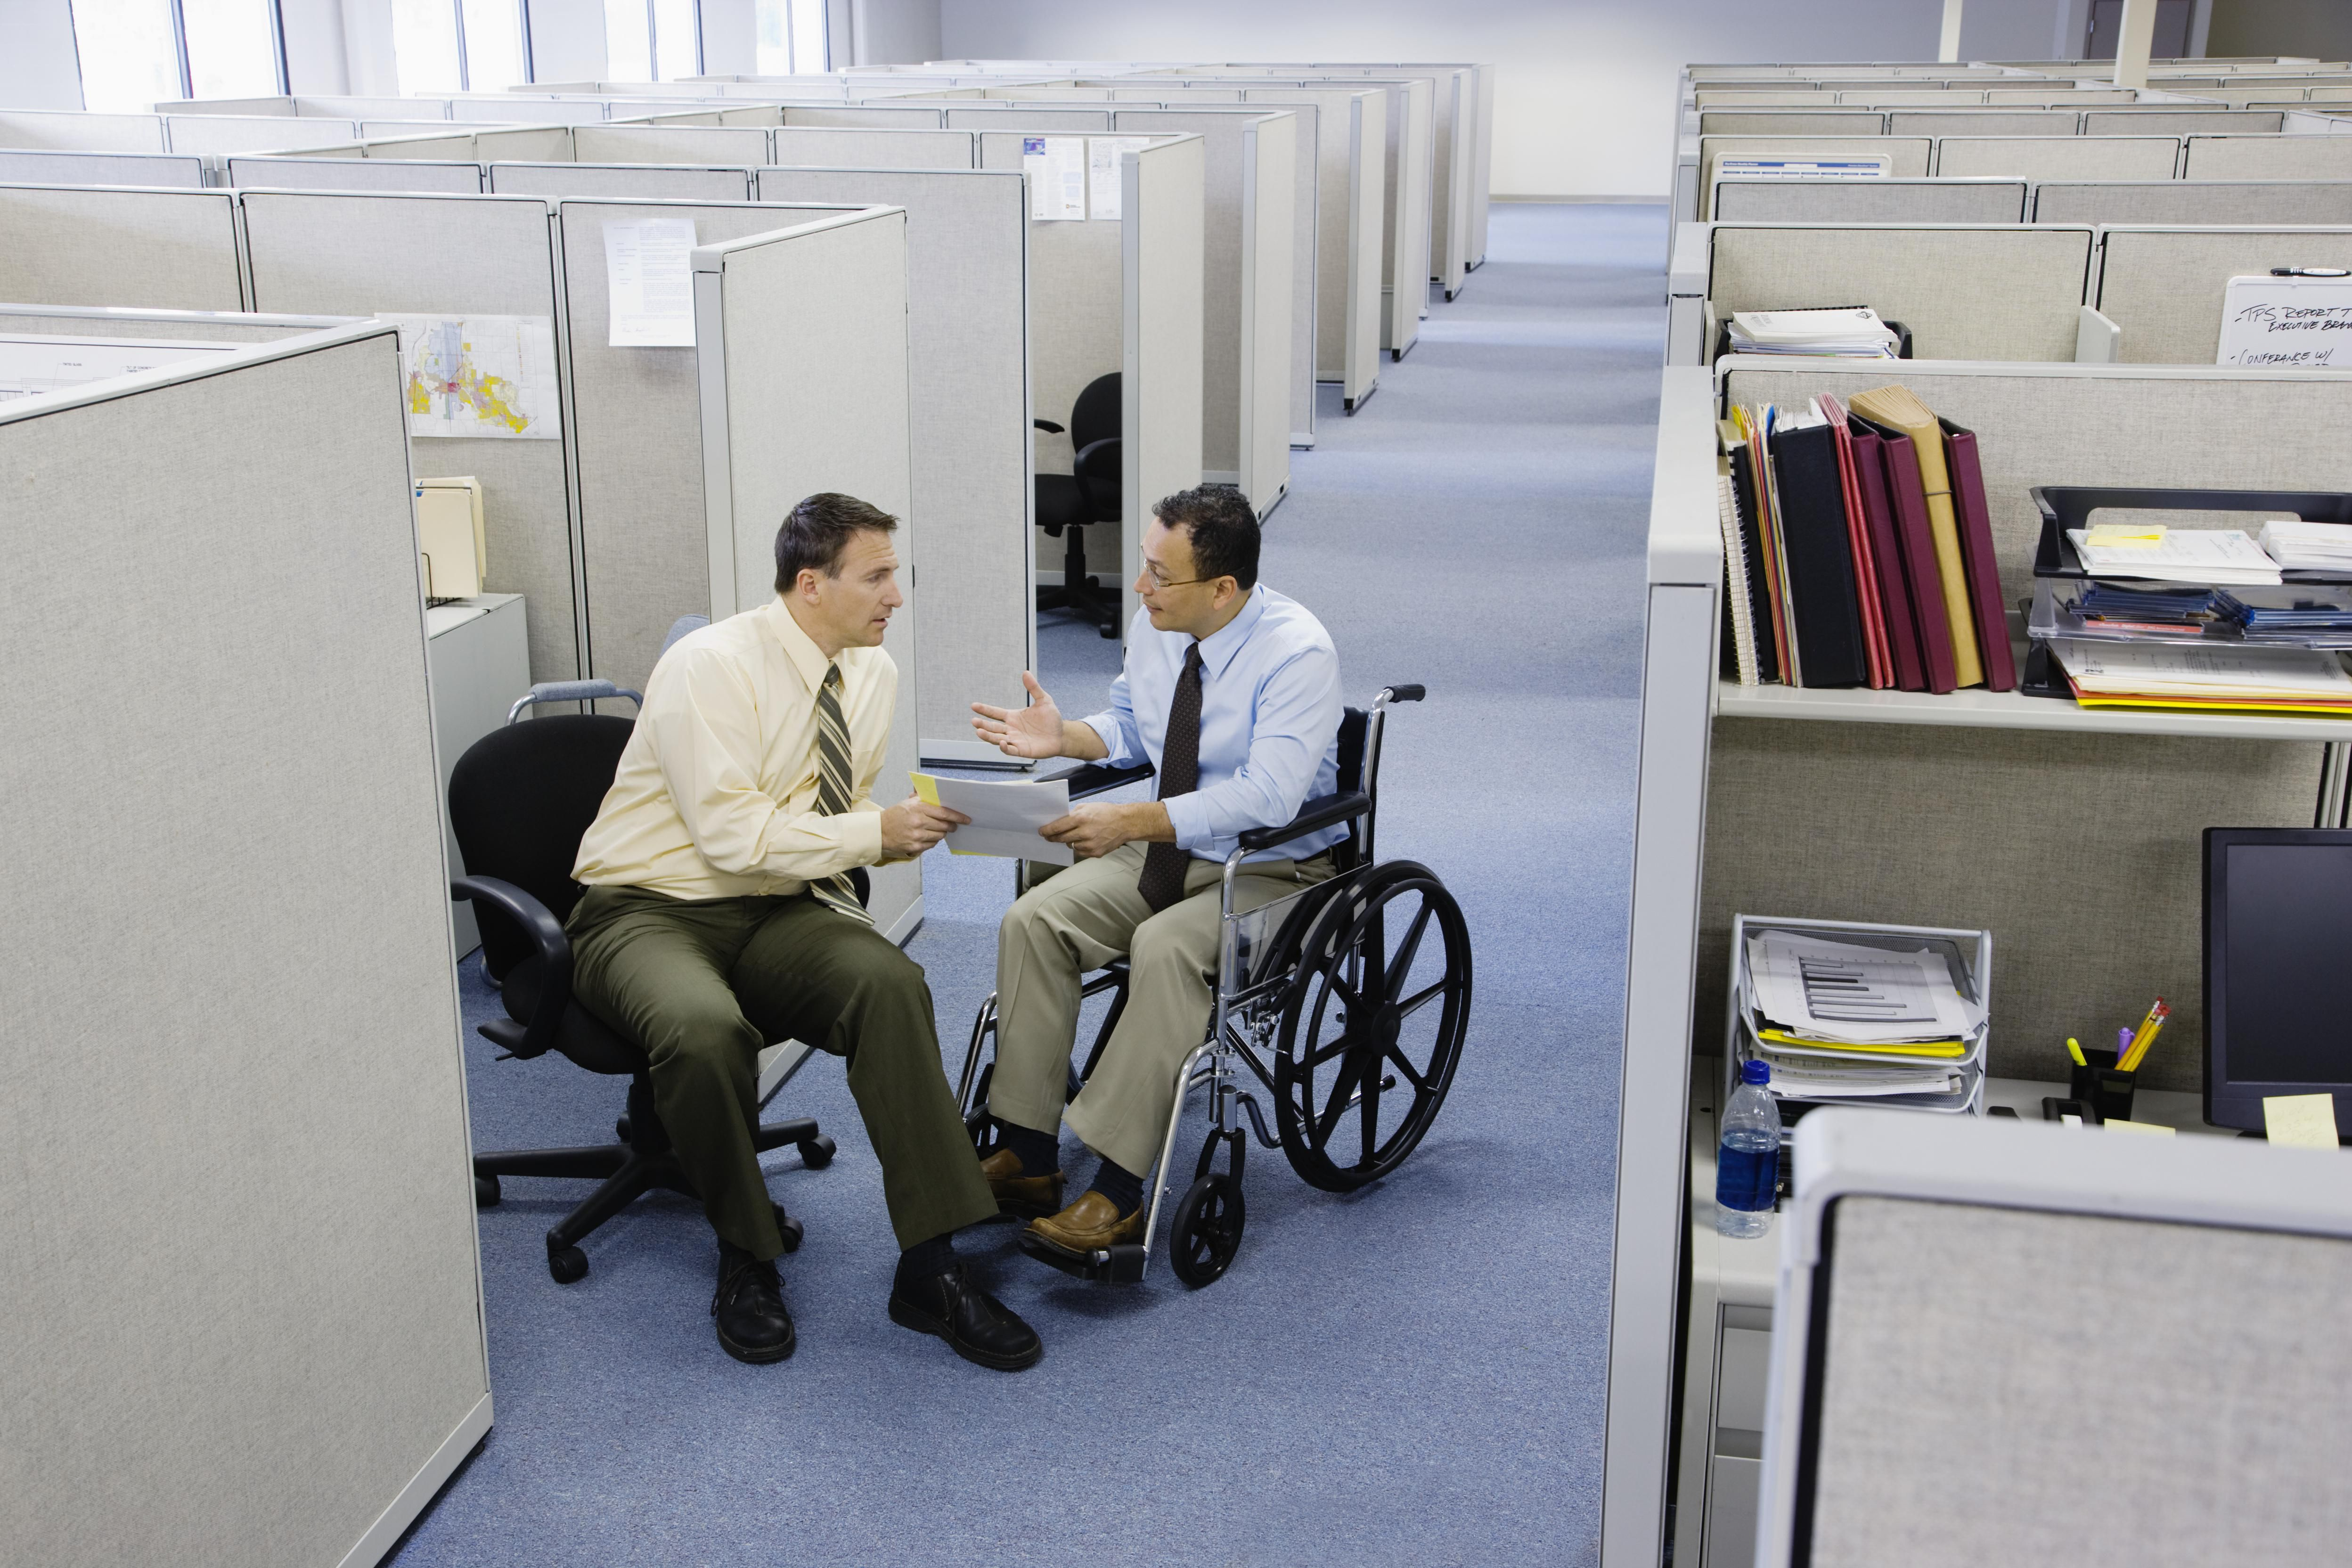 Best Companies or Workplaces for Disabilities